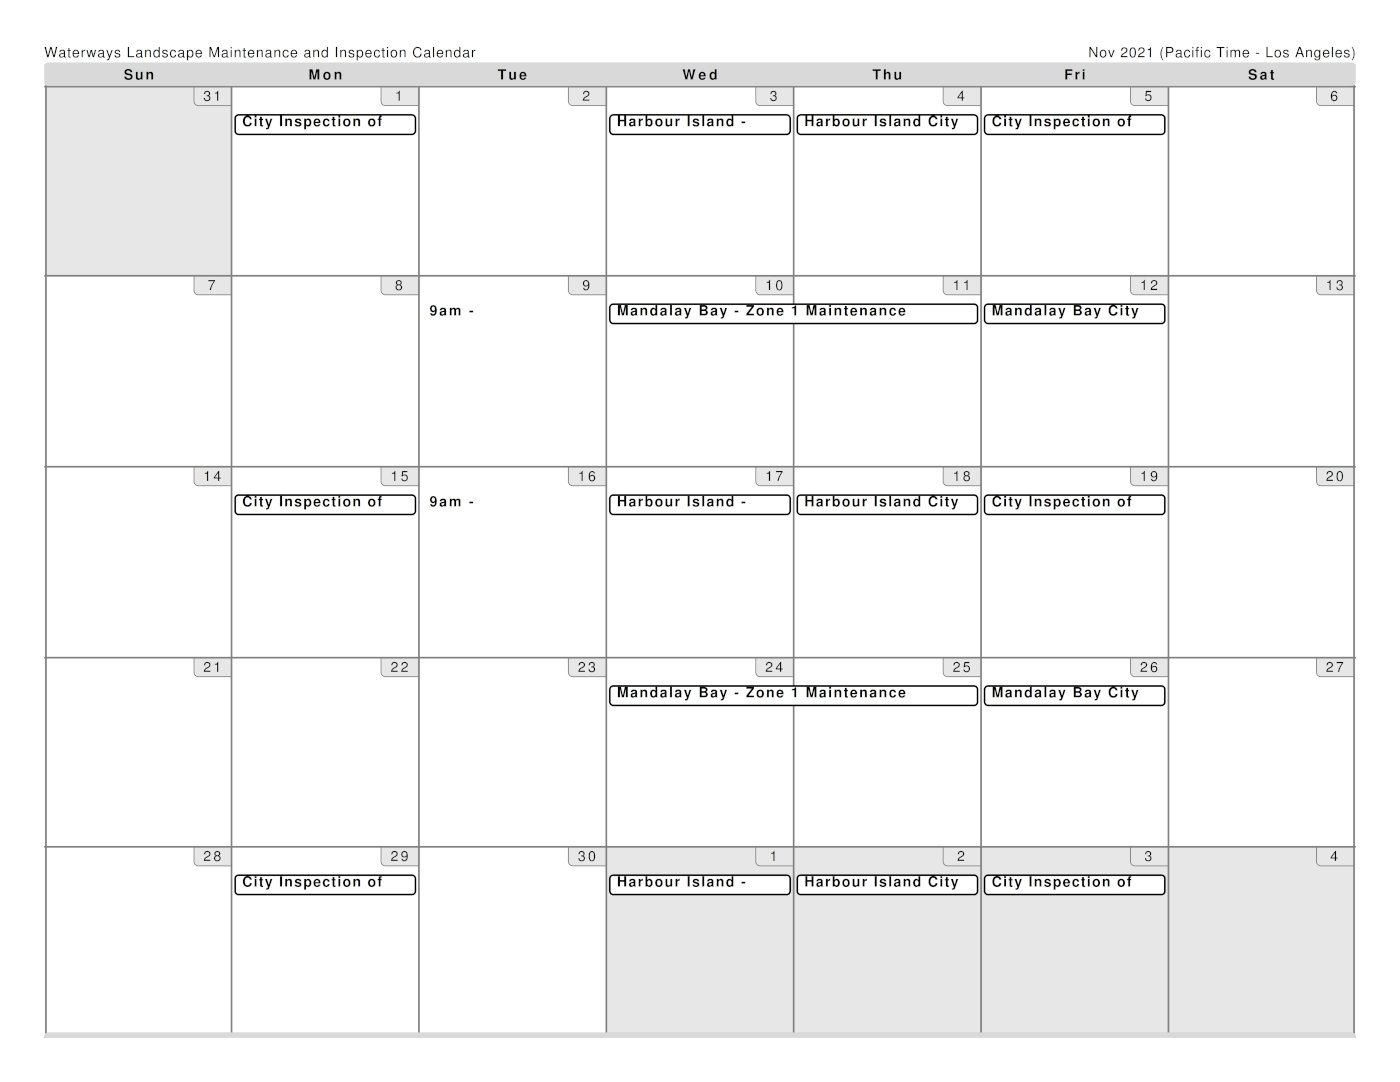 Brightview Schedule for November 2021